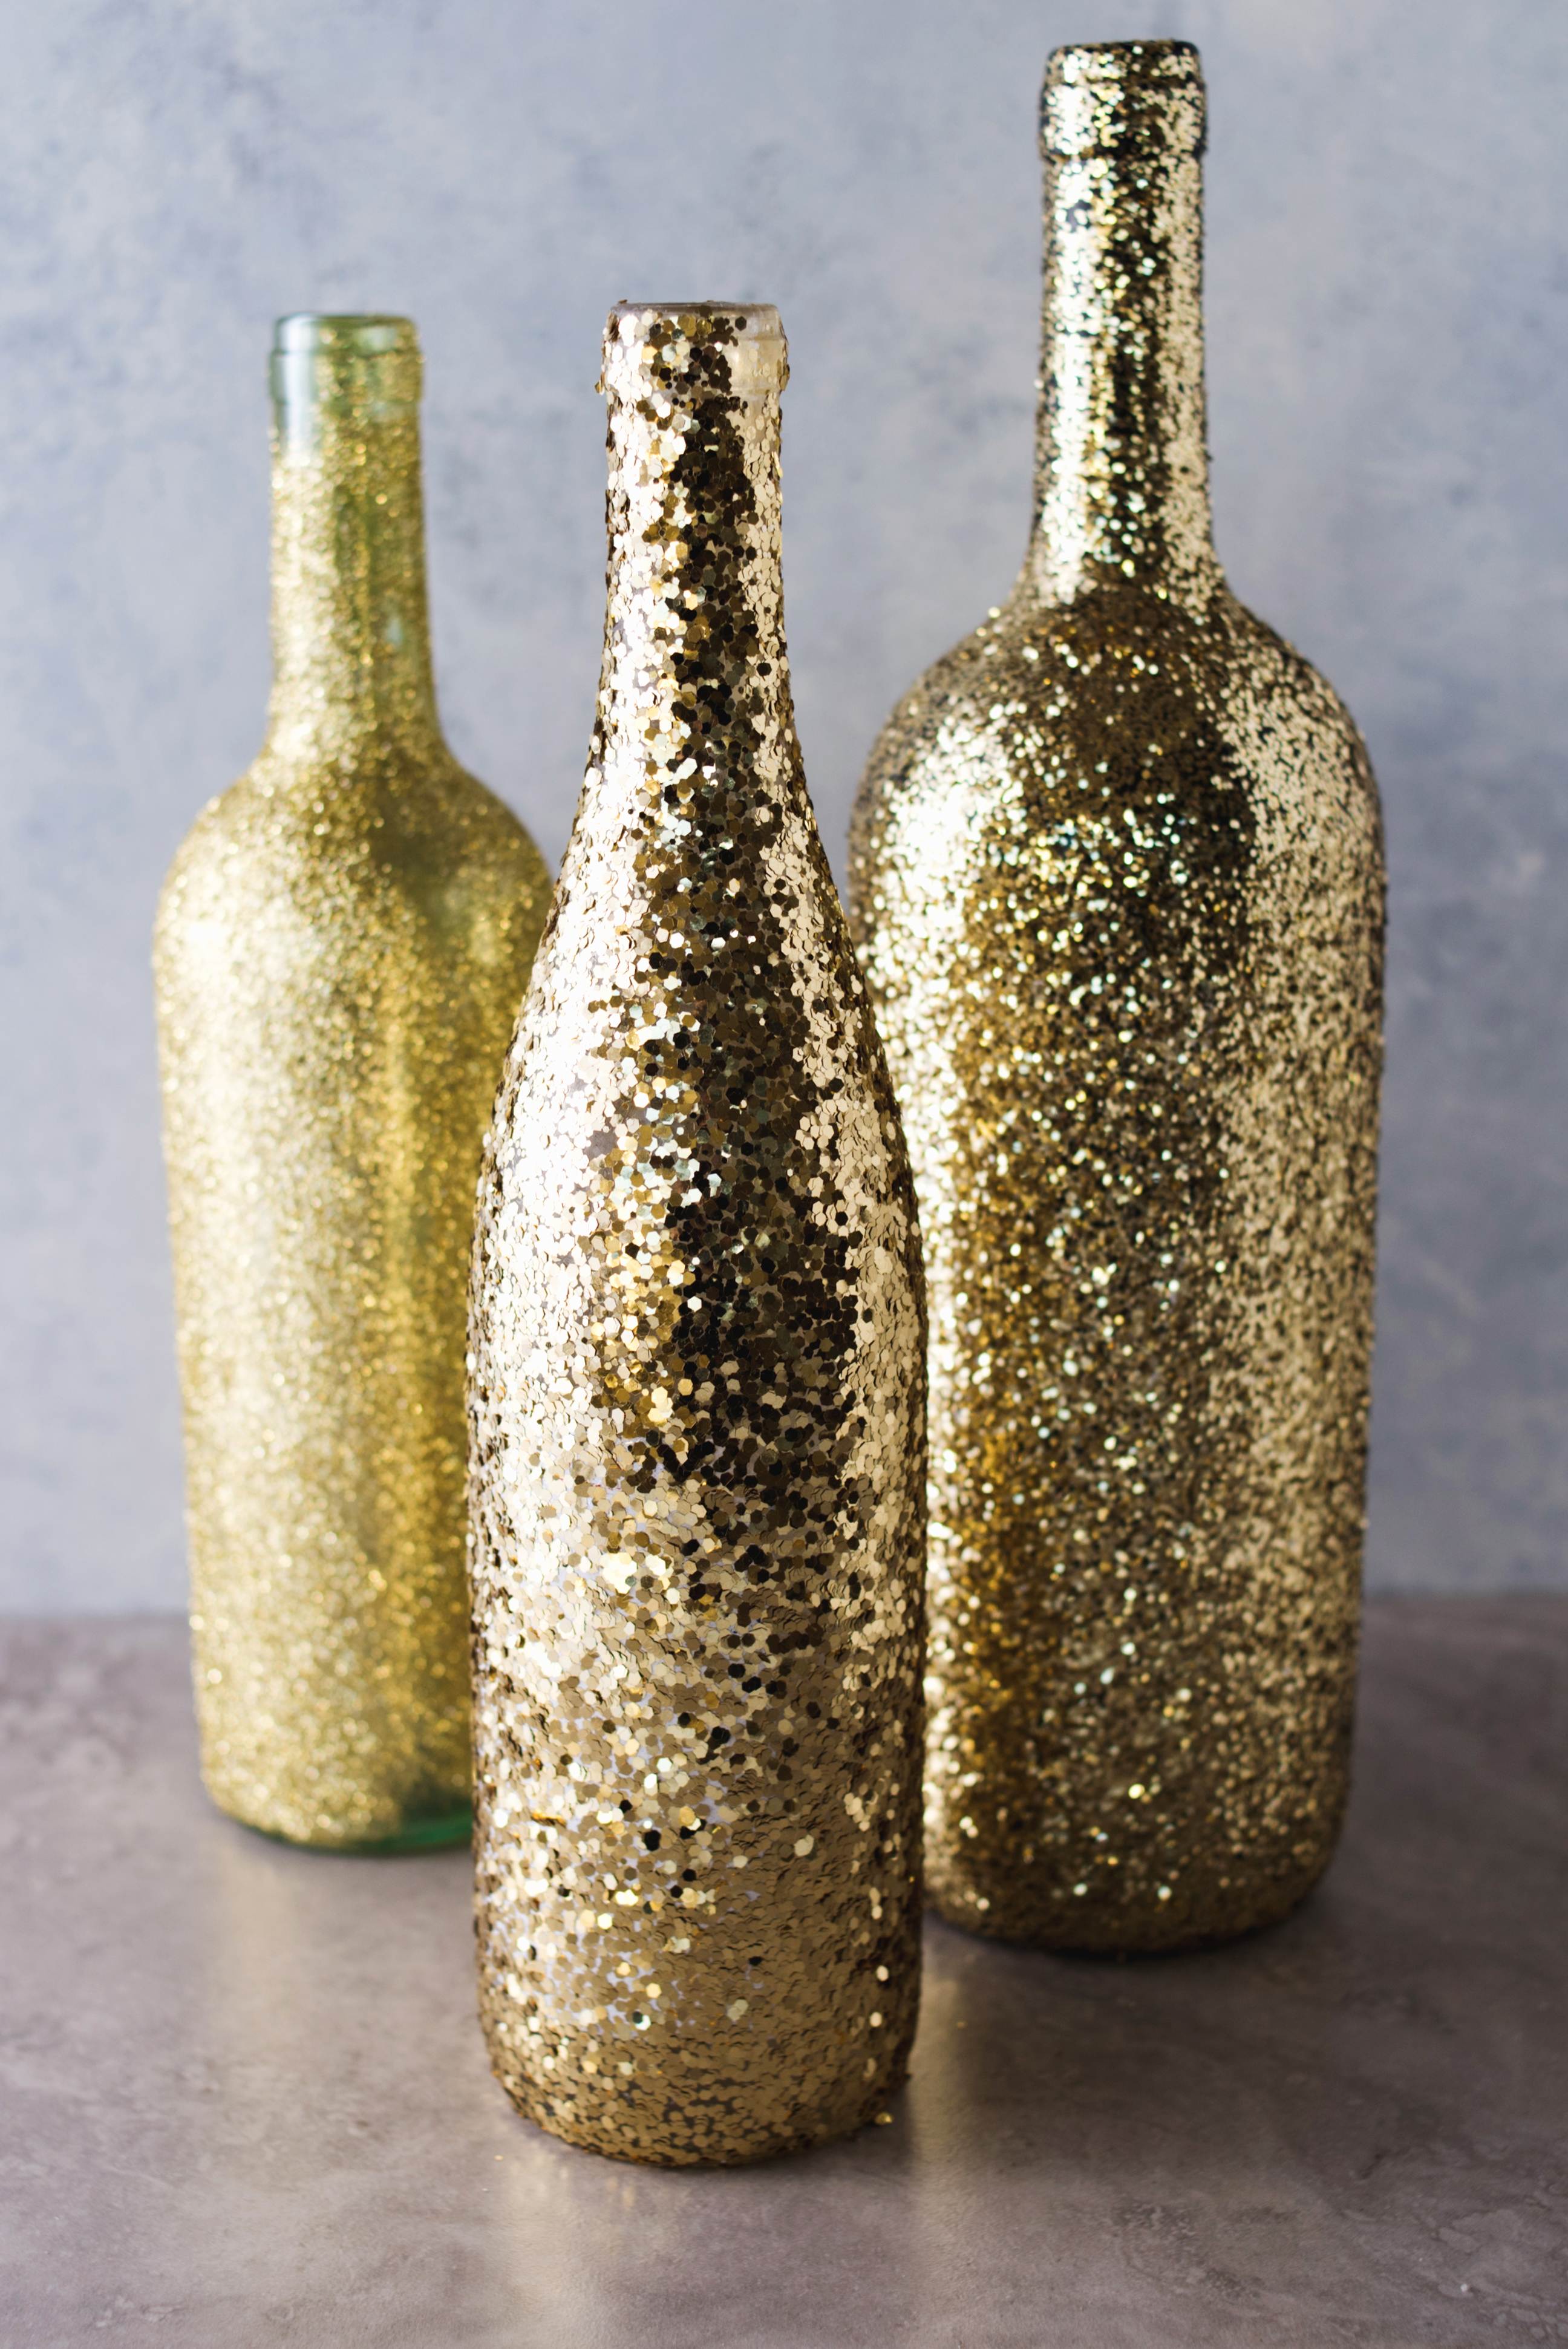 Diy wine bottle glitter vases a little craft in your day for Decorating wine bottles with glitter